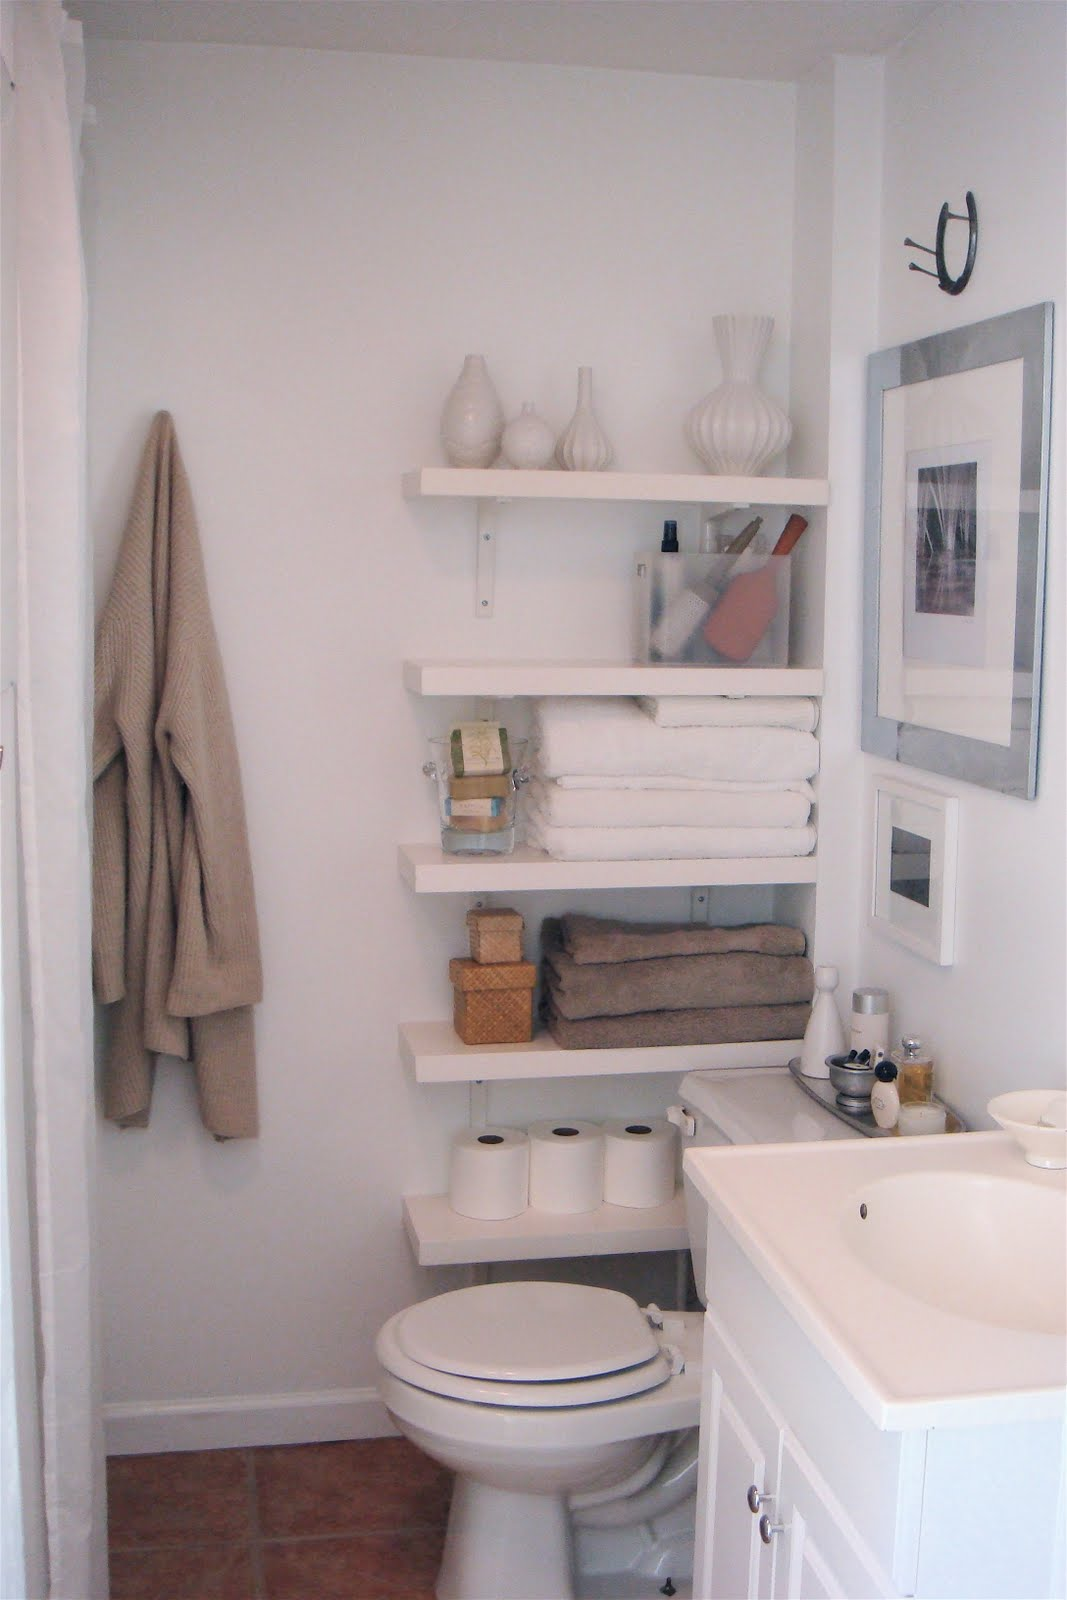 10 id es pour une petite salle de bain cocon de for Bathroom ideas small spaces photos